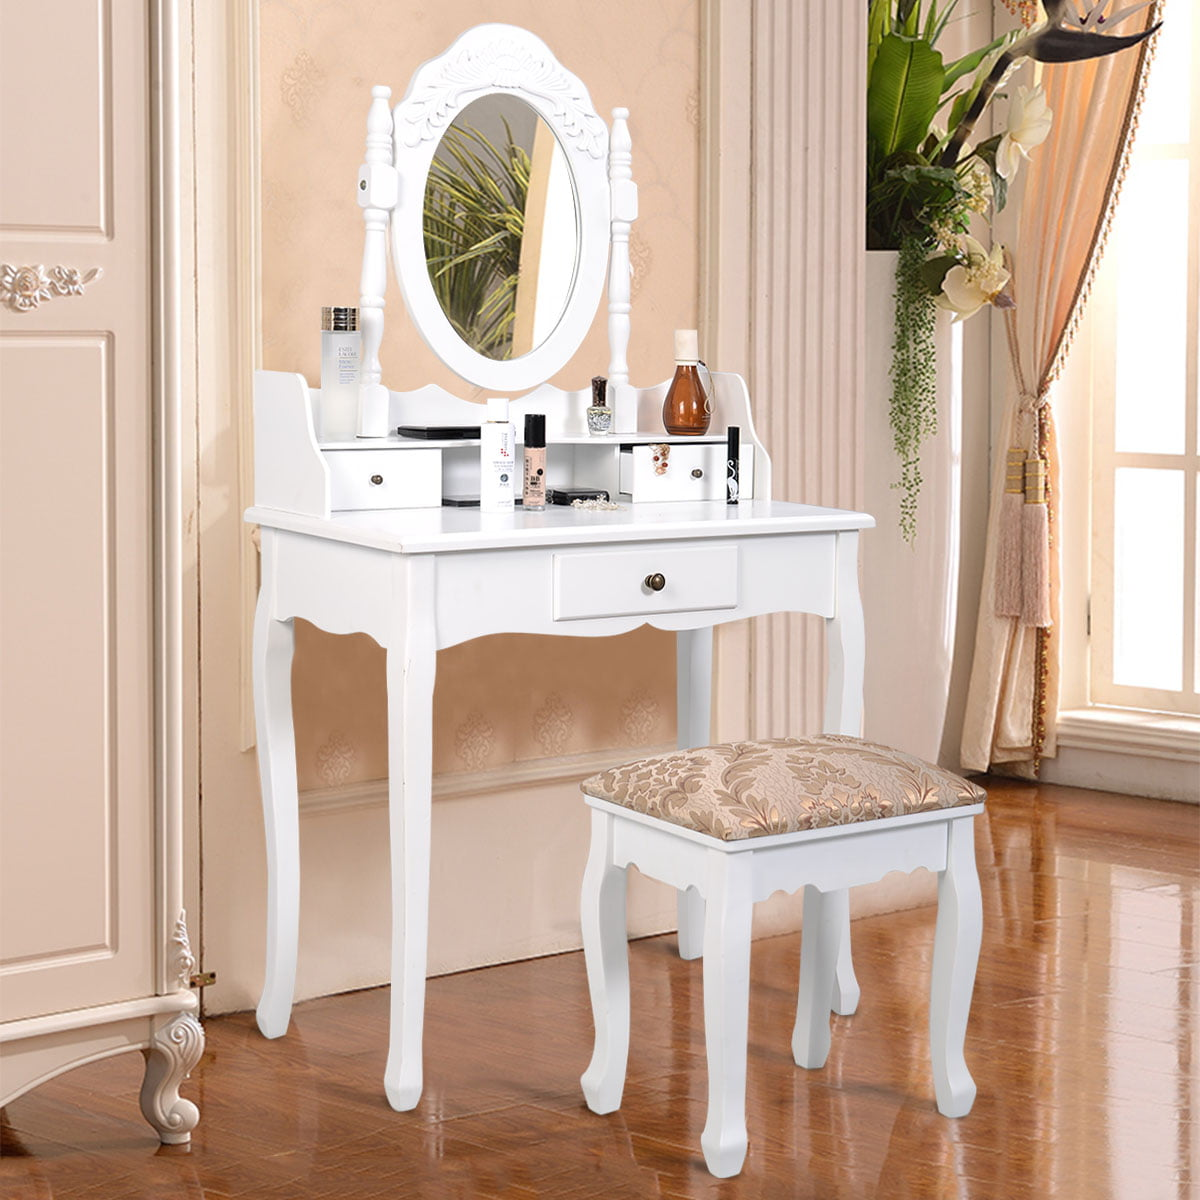 Home Styles Naples Vanity Table Mirror And Bench White Walmartcom - Vanity table